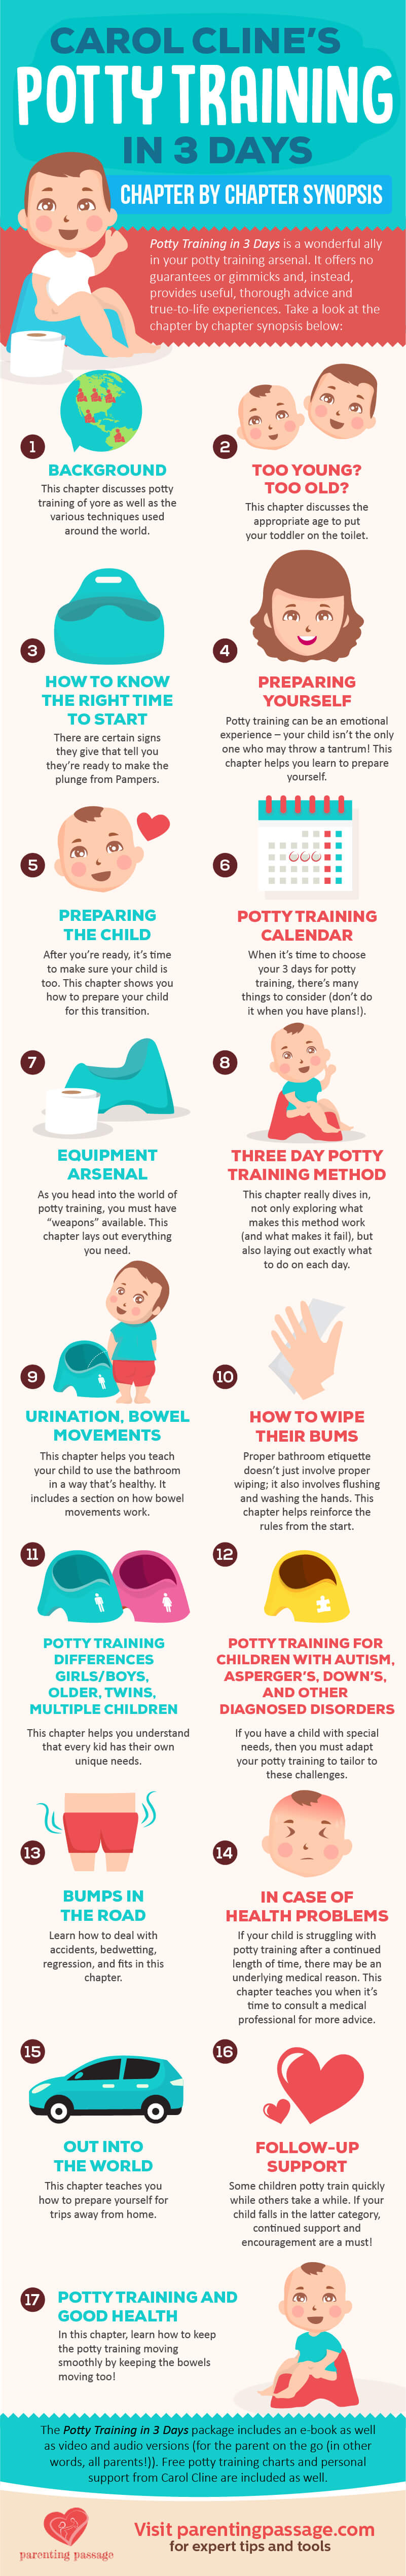 Carol Cline Potty Training in 3 Days – Chapter by Chapter Synopsis